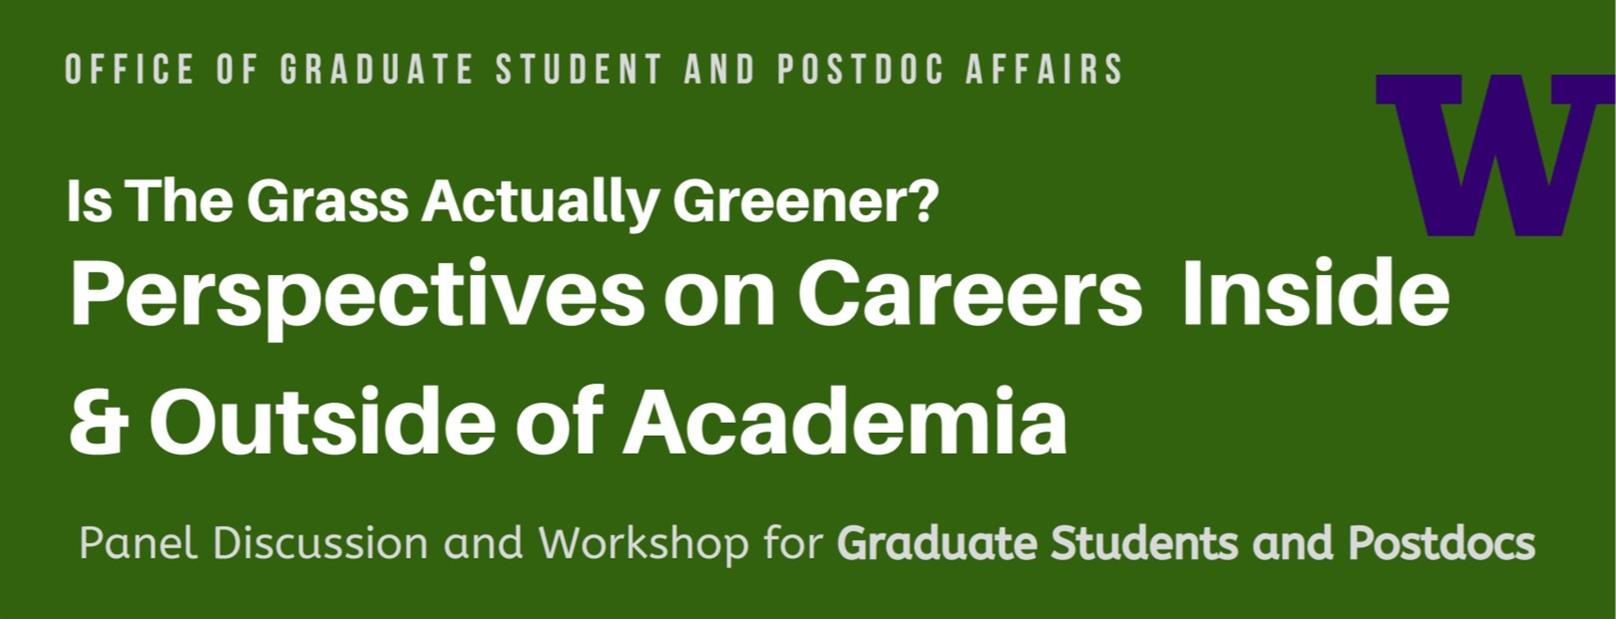 Is the Grass Actually Greener? Perspectives on Careers Inside and Outside of Academia